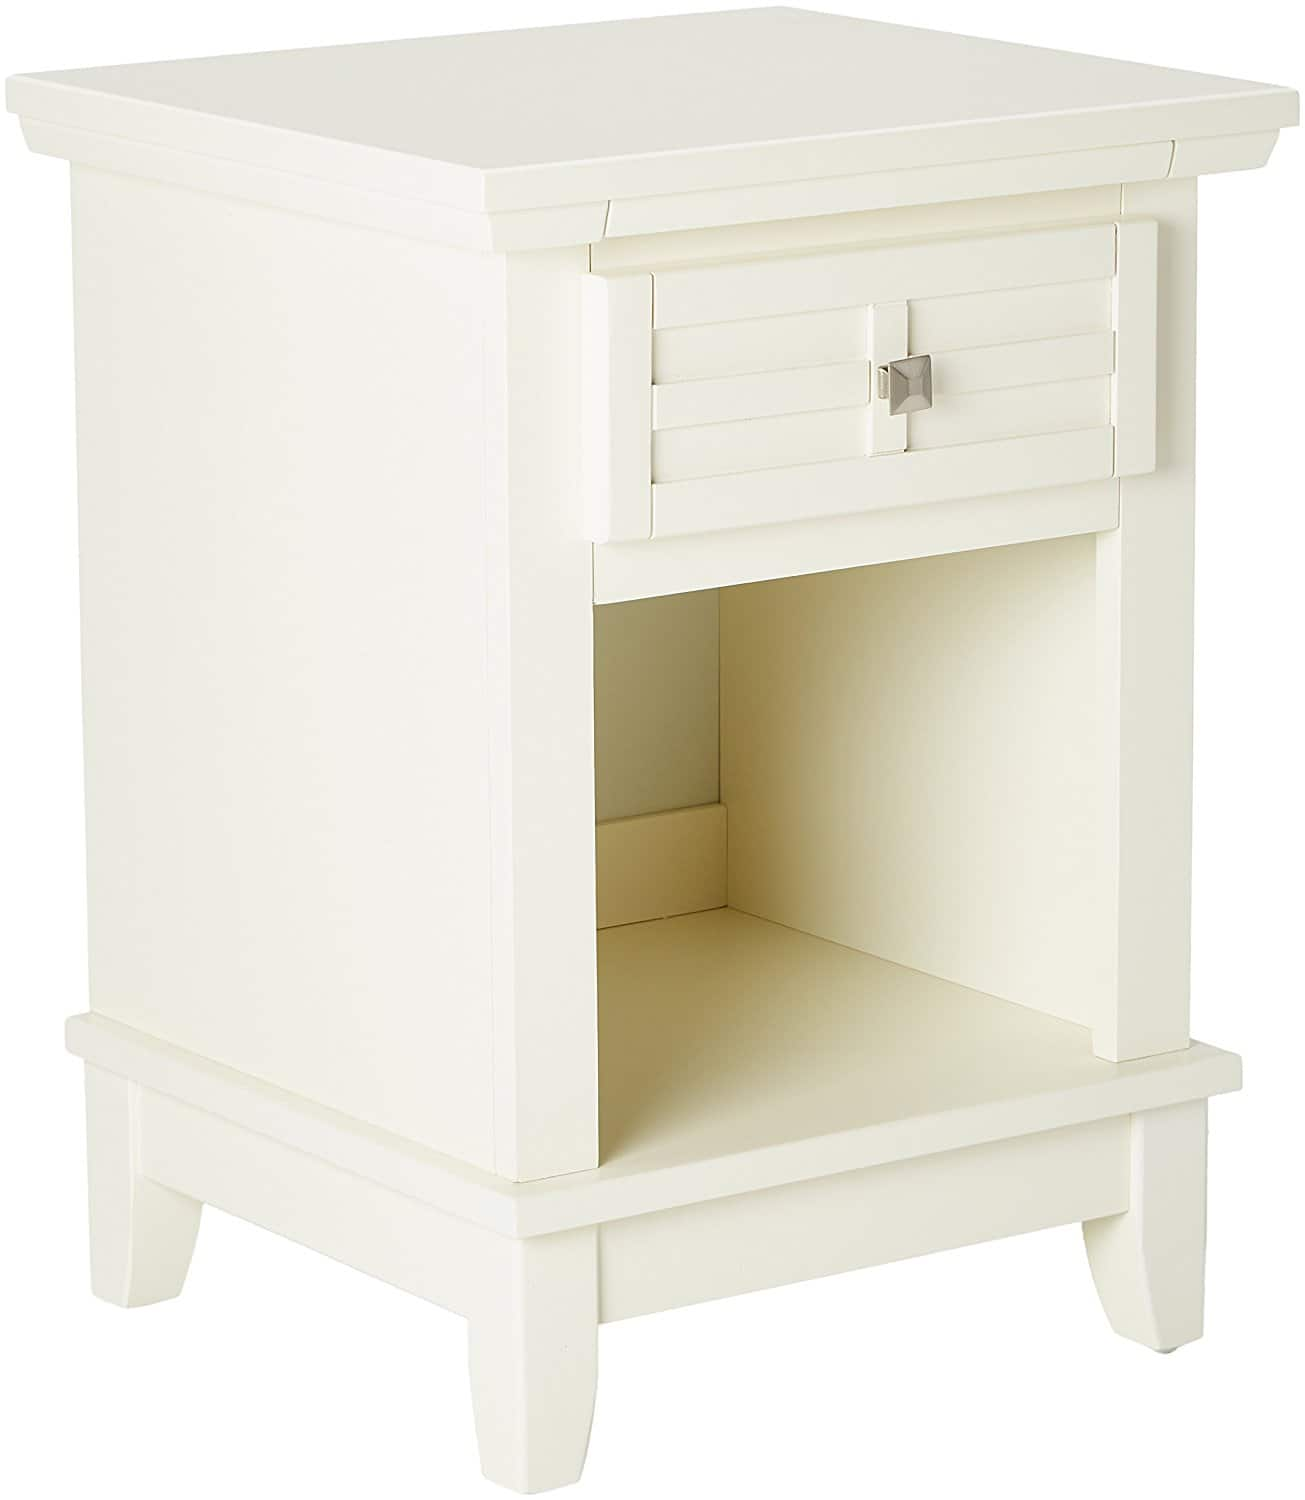 Home Styles 18in Night Stand (white/cream) $37 + free shipping $36.83